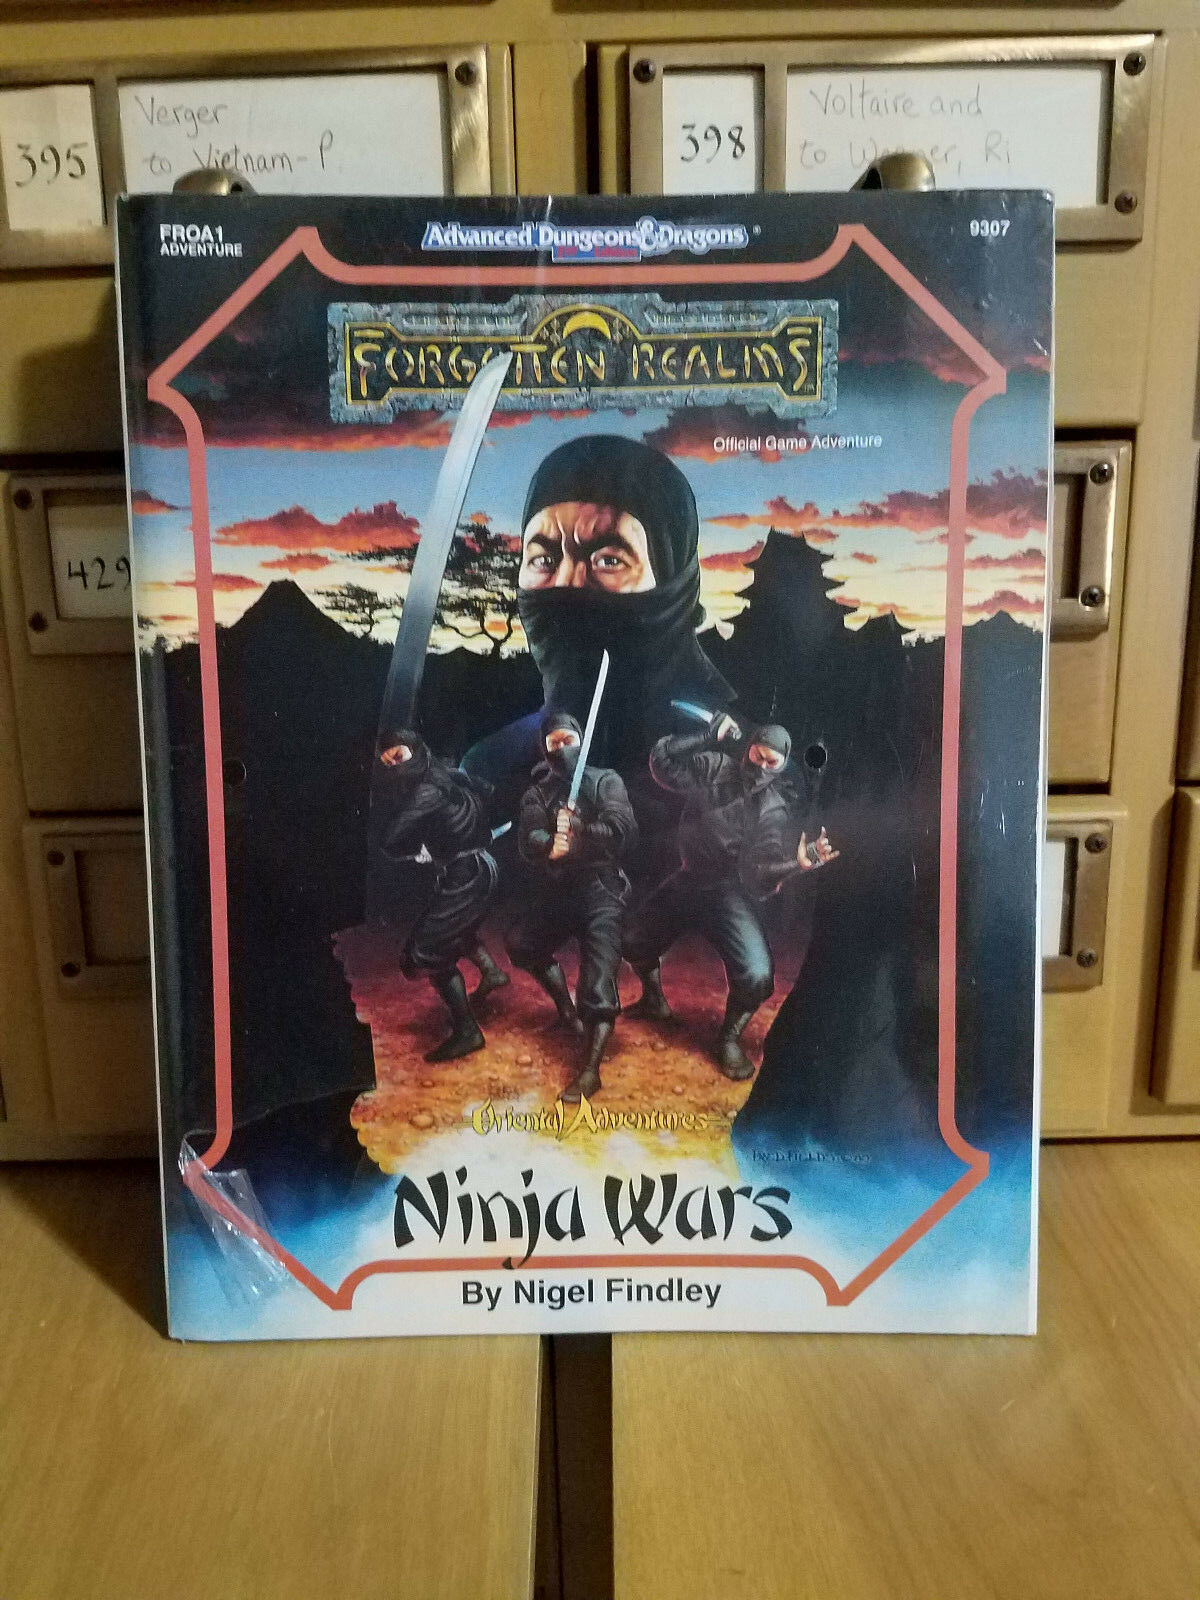 Sealed Forgotten Realms -Ninja Wars AD&D 9307 FROA1✰Sarge & Reds✰